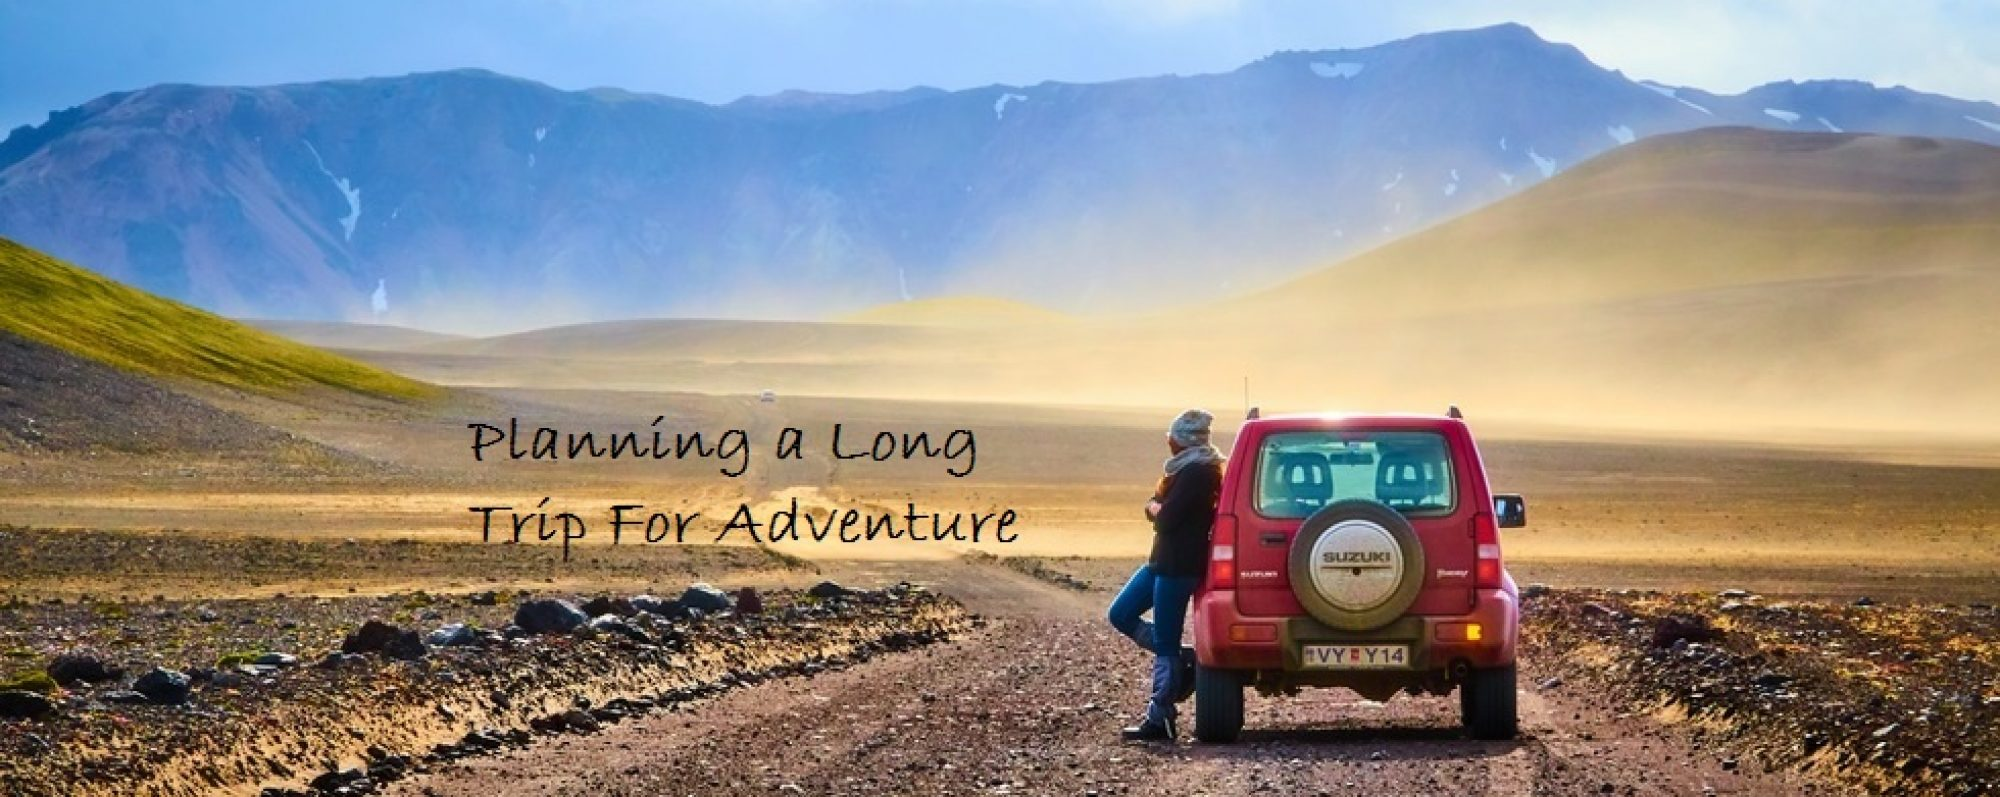 Planning a Long Trip For Adventure